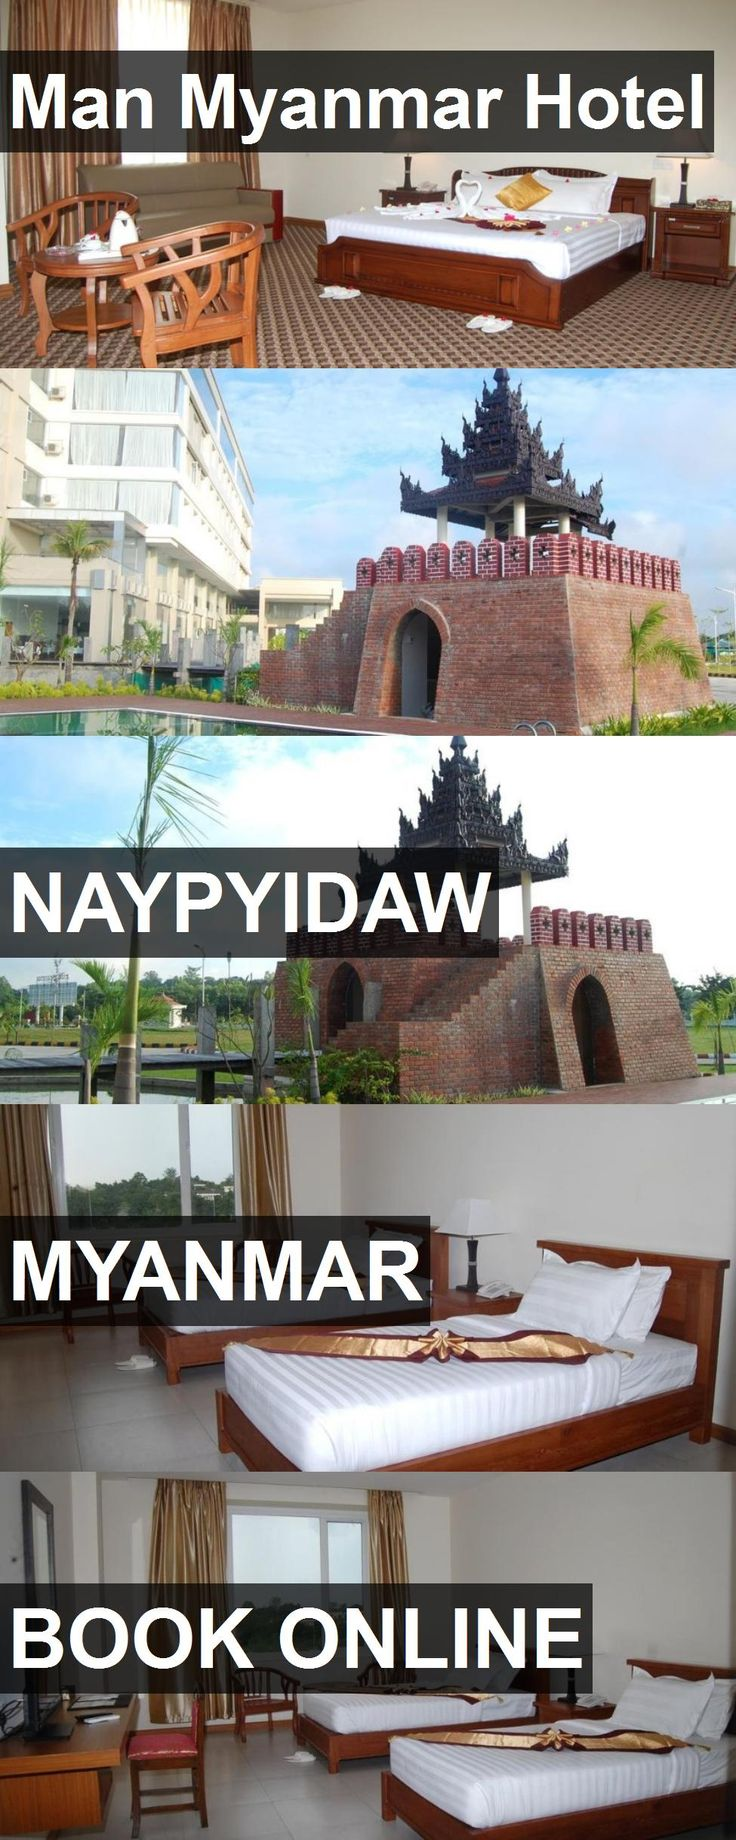 Man Myanmar Hotel in Naypyidaw, Myanmar. For more information, photos, reviews and best prices please follow the link. #Myanmar #Naypyidaw #travel #vacation #hotel